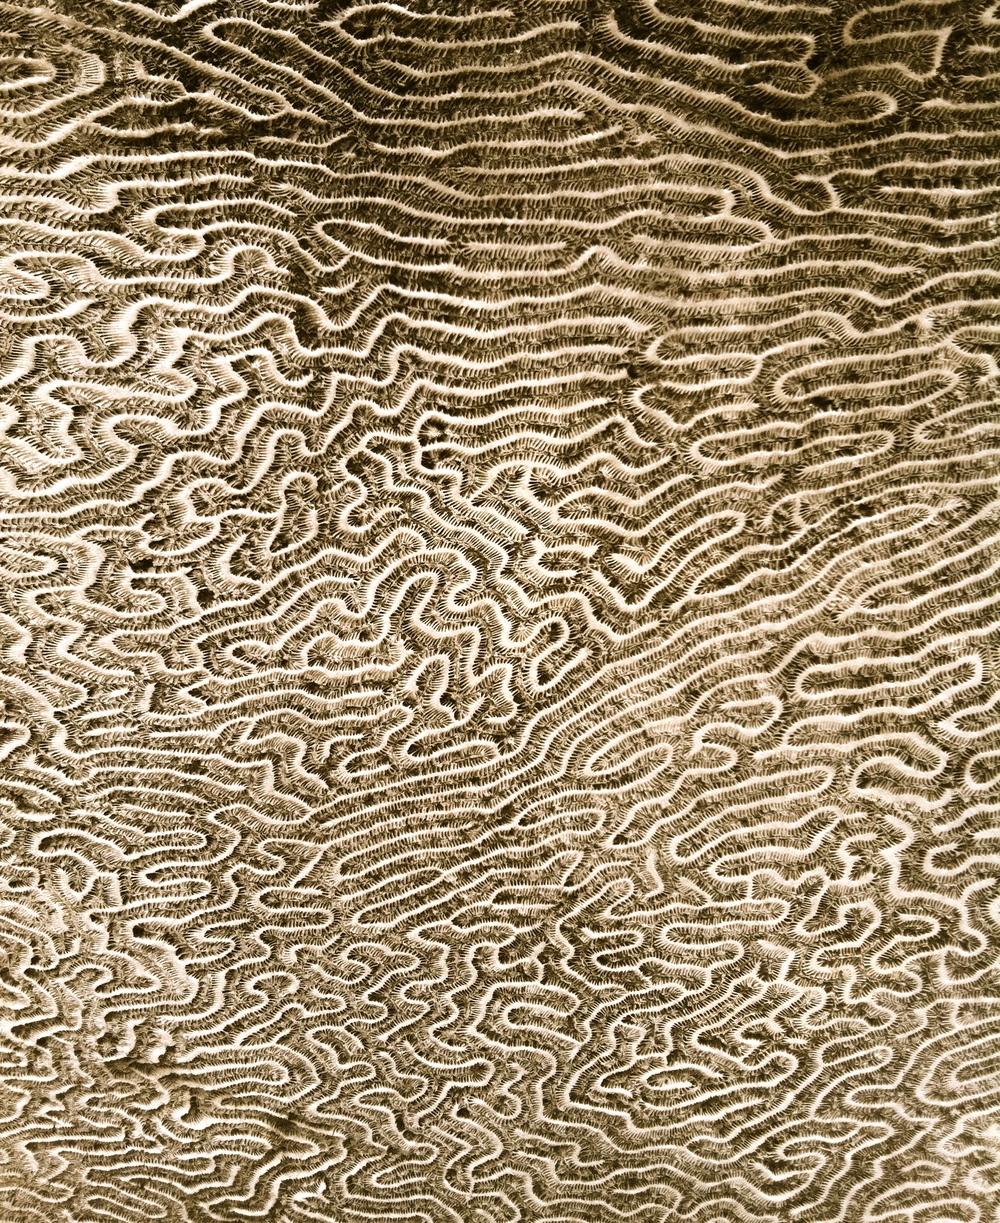 Brain coral, photo: RRC